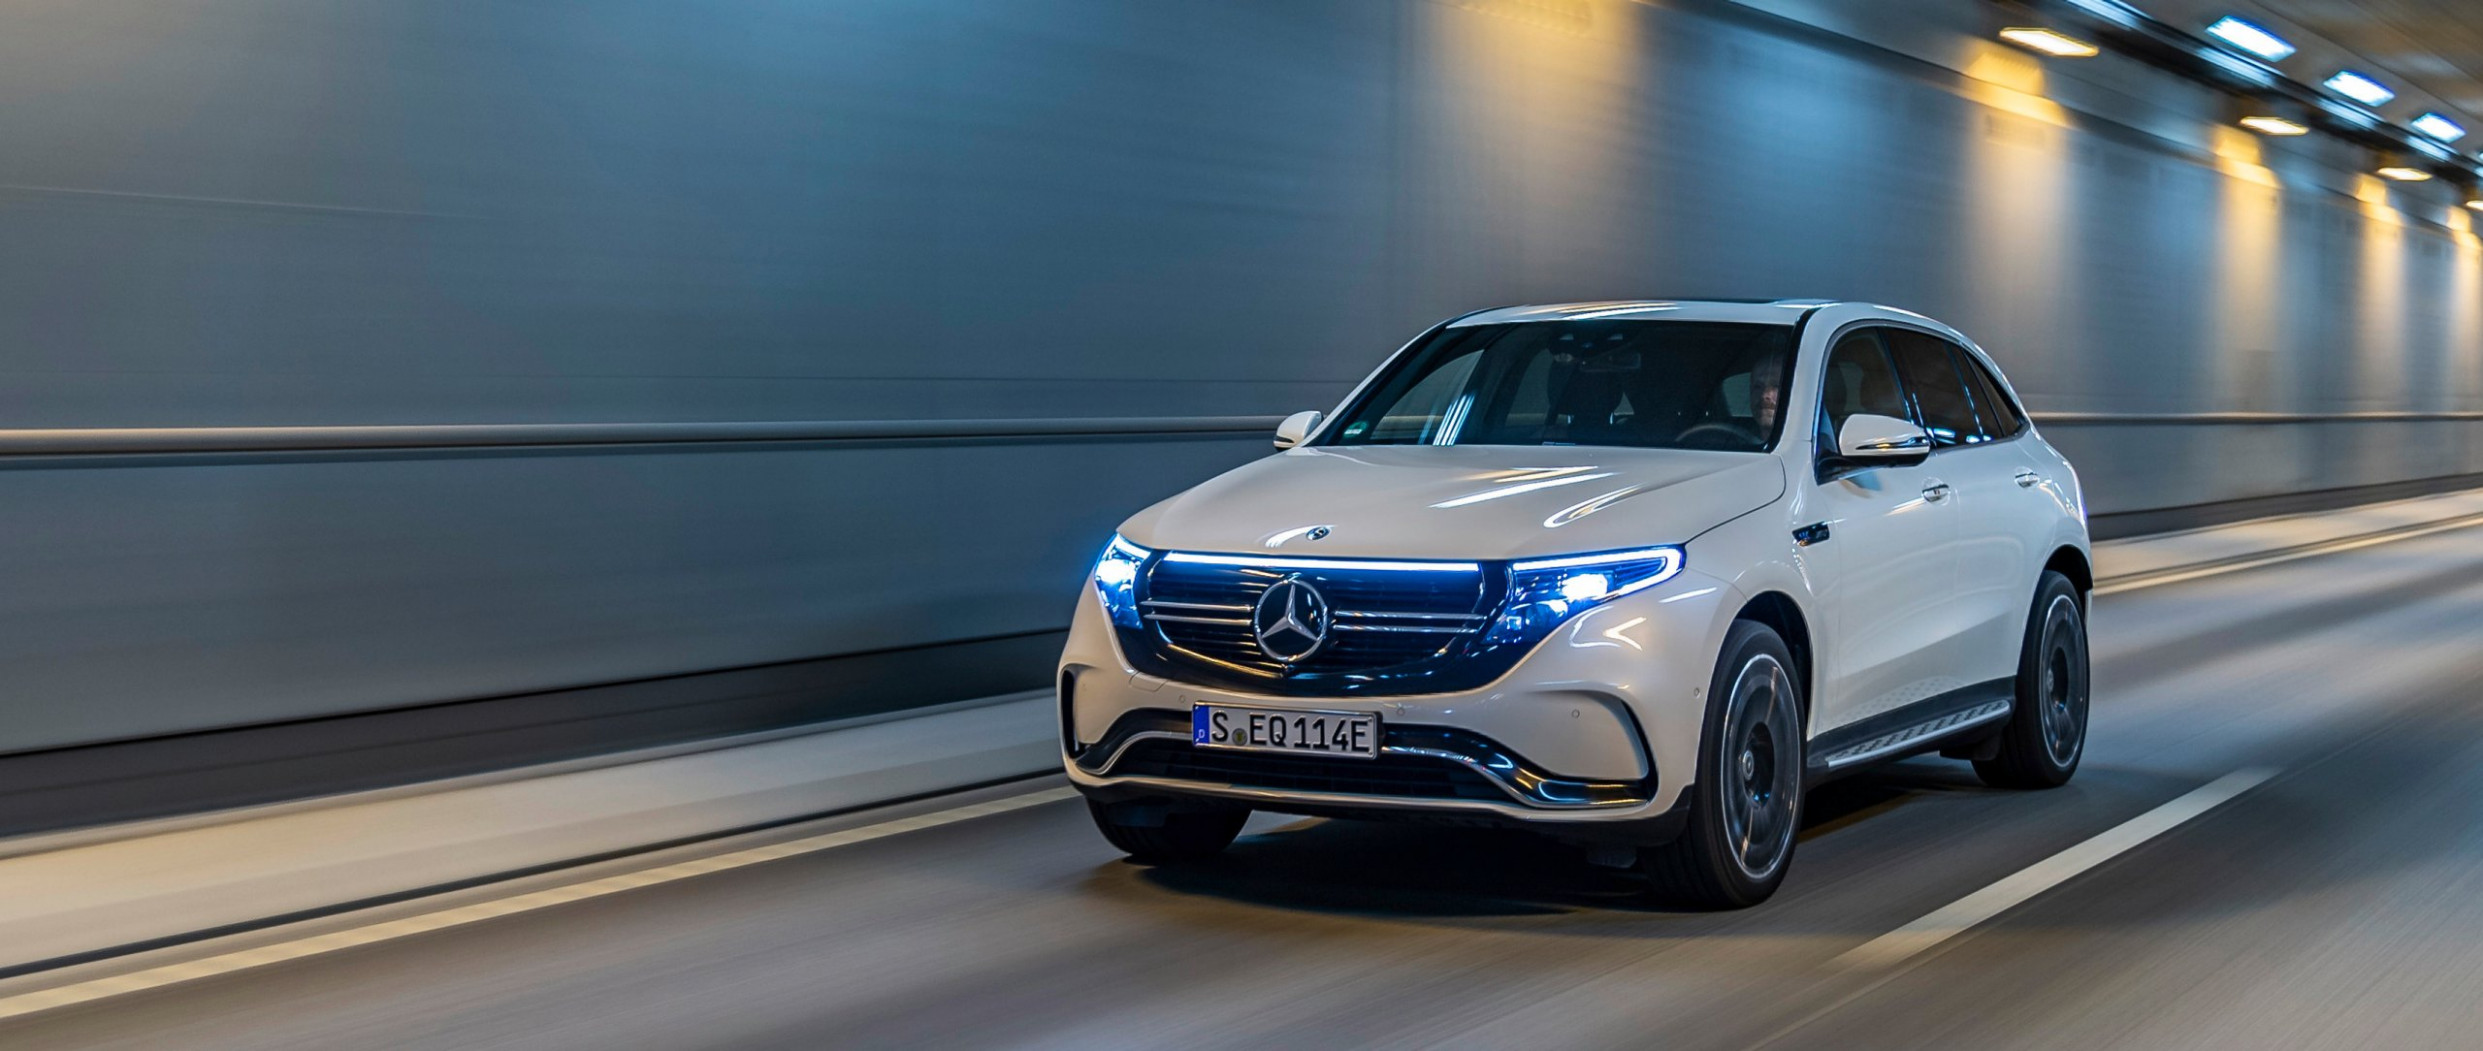 EQ Electric Intelligence by Mercedes-Benz - 2020 mercedes uk